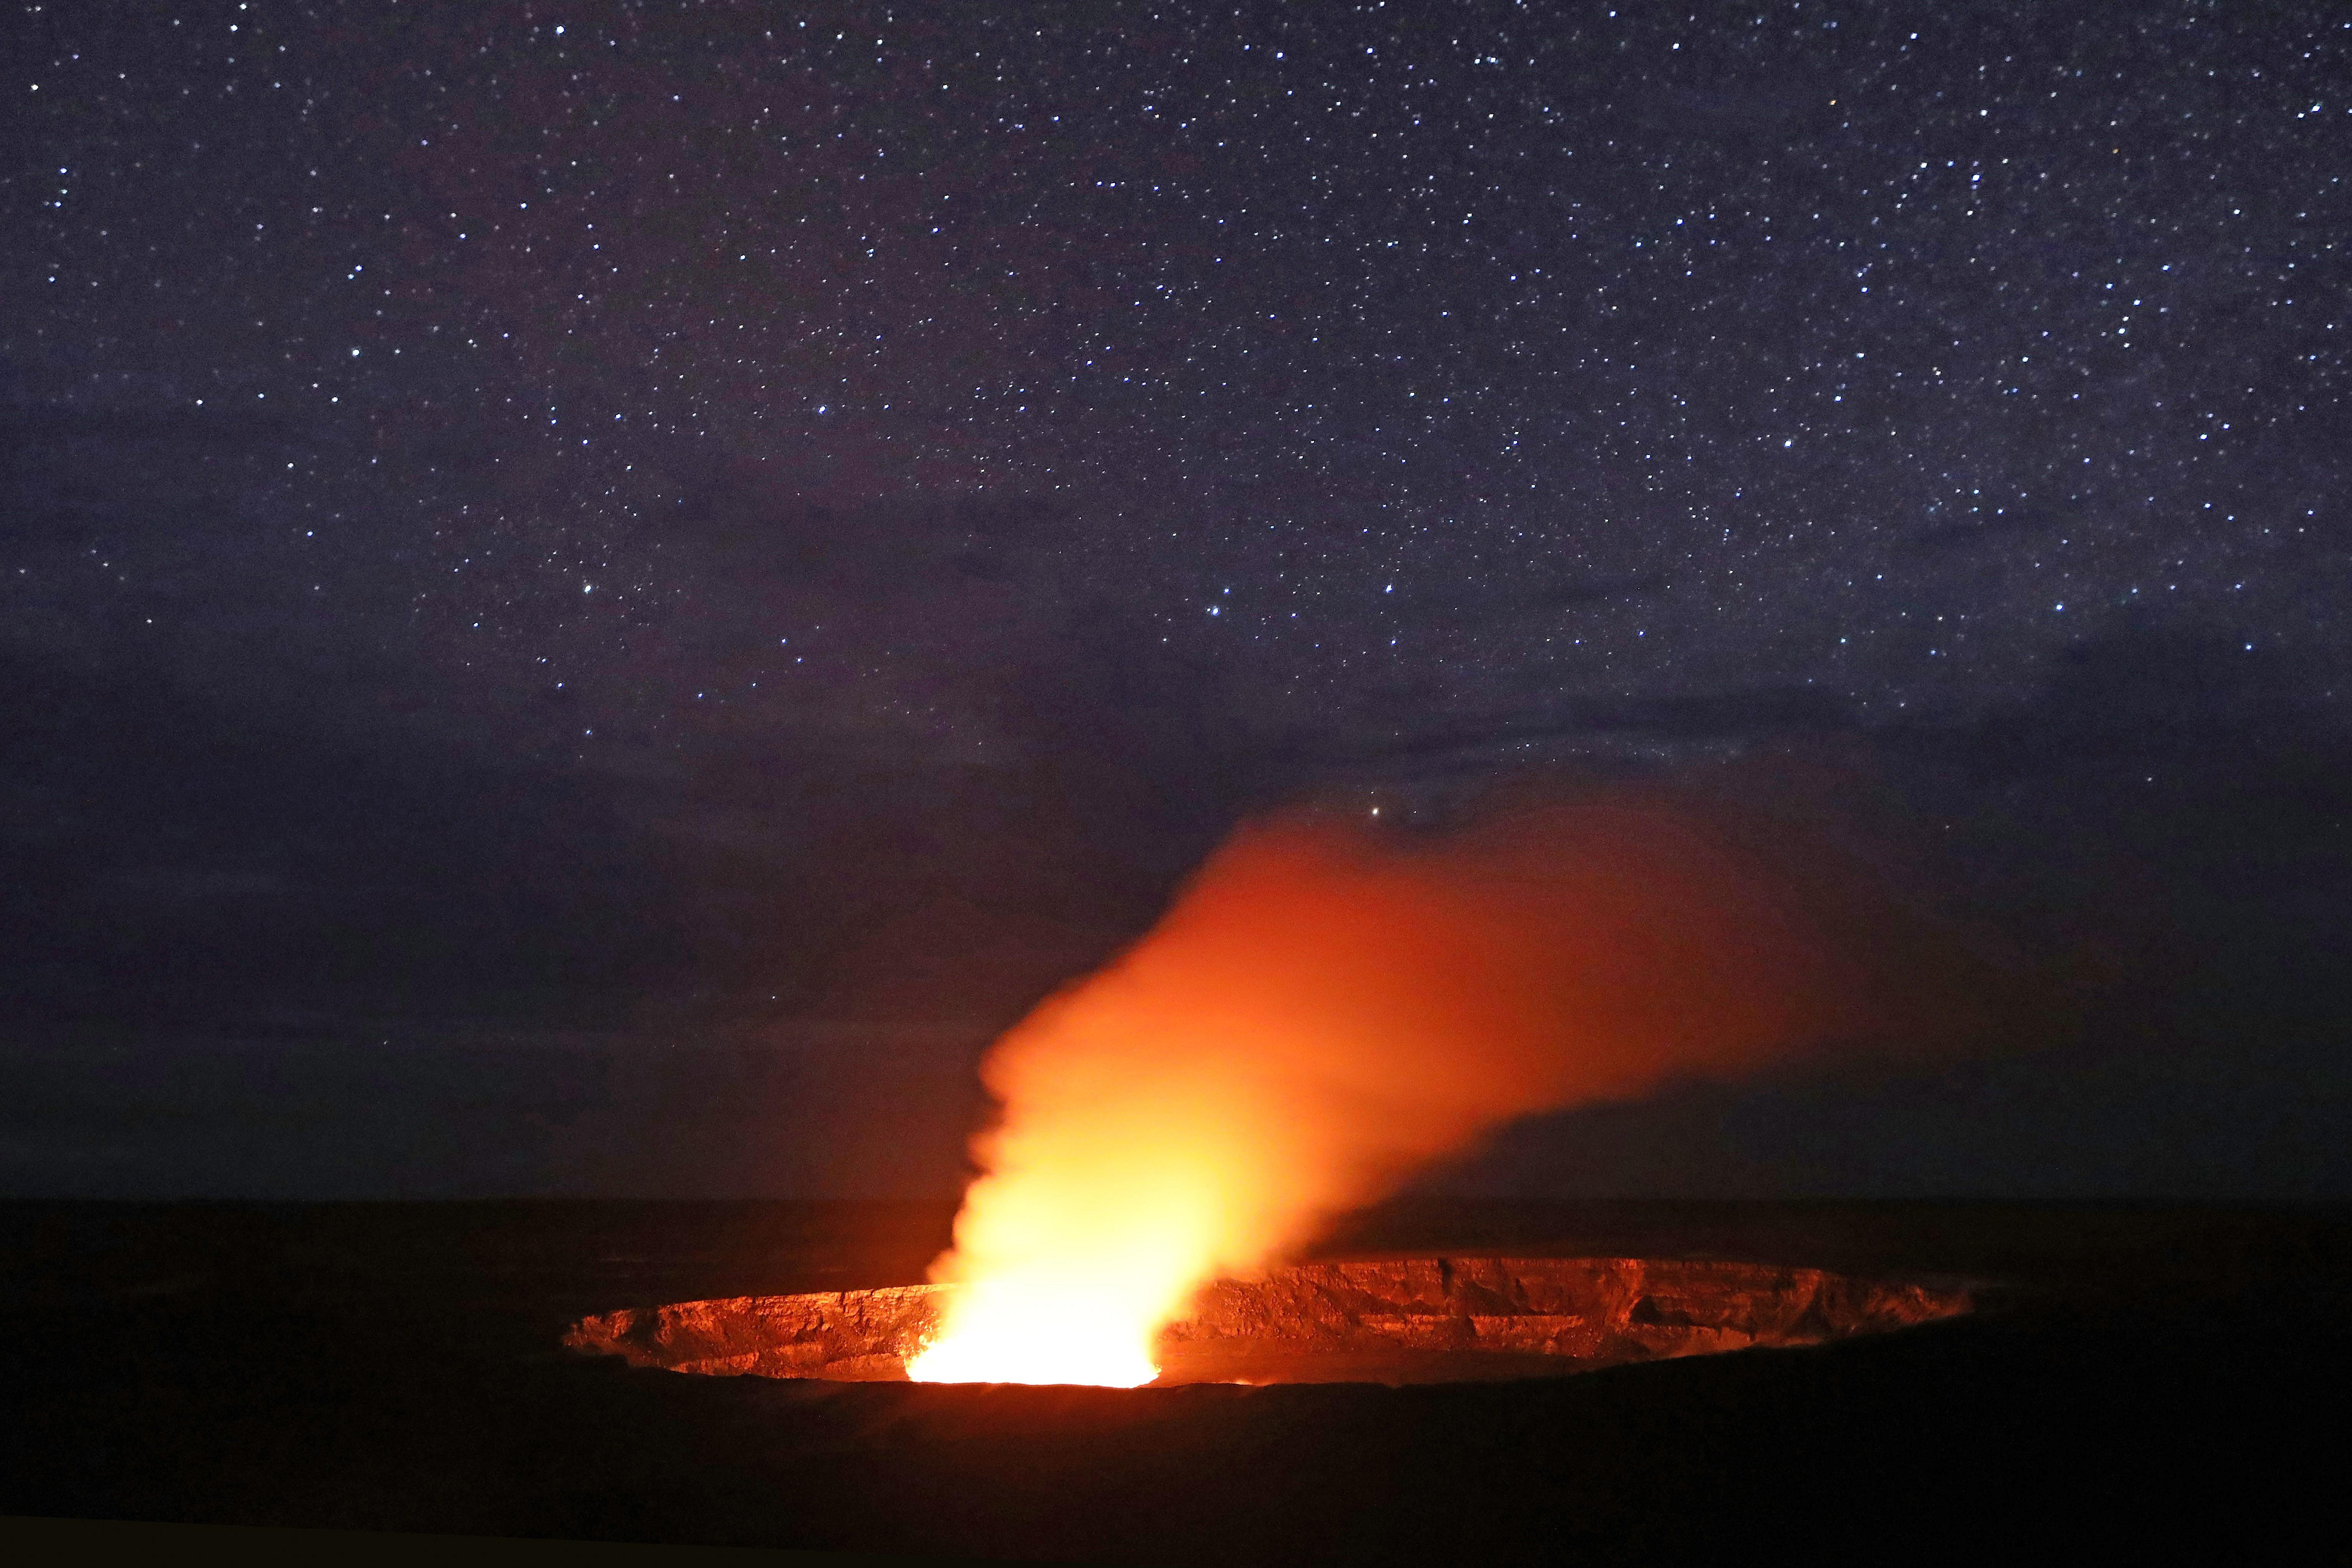 Hawaii's Kilauea Volcano Eruption Could Hurl Boulders the Size of Refrigerators Miles Into the Air